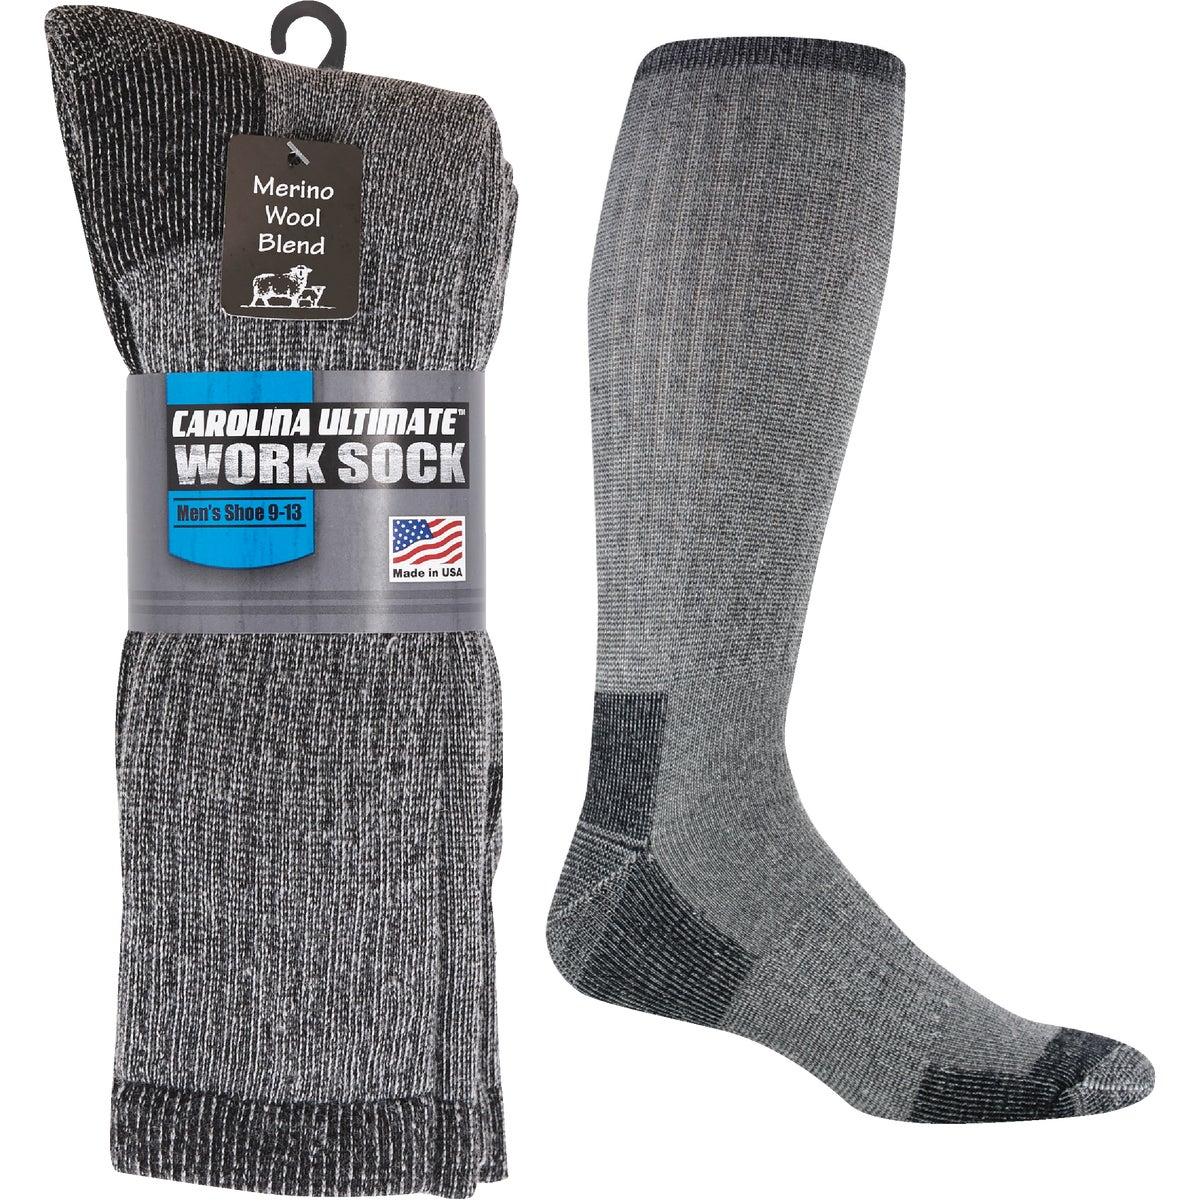 LG 40BELOW BLACK SOCK - F2230-052LG by Wigwam Mills, Inc